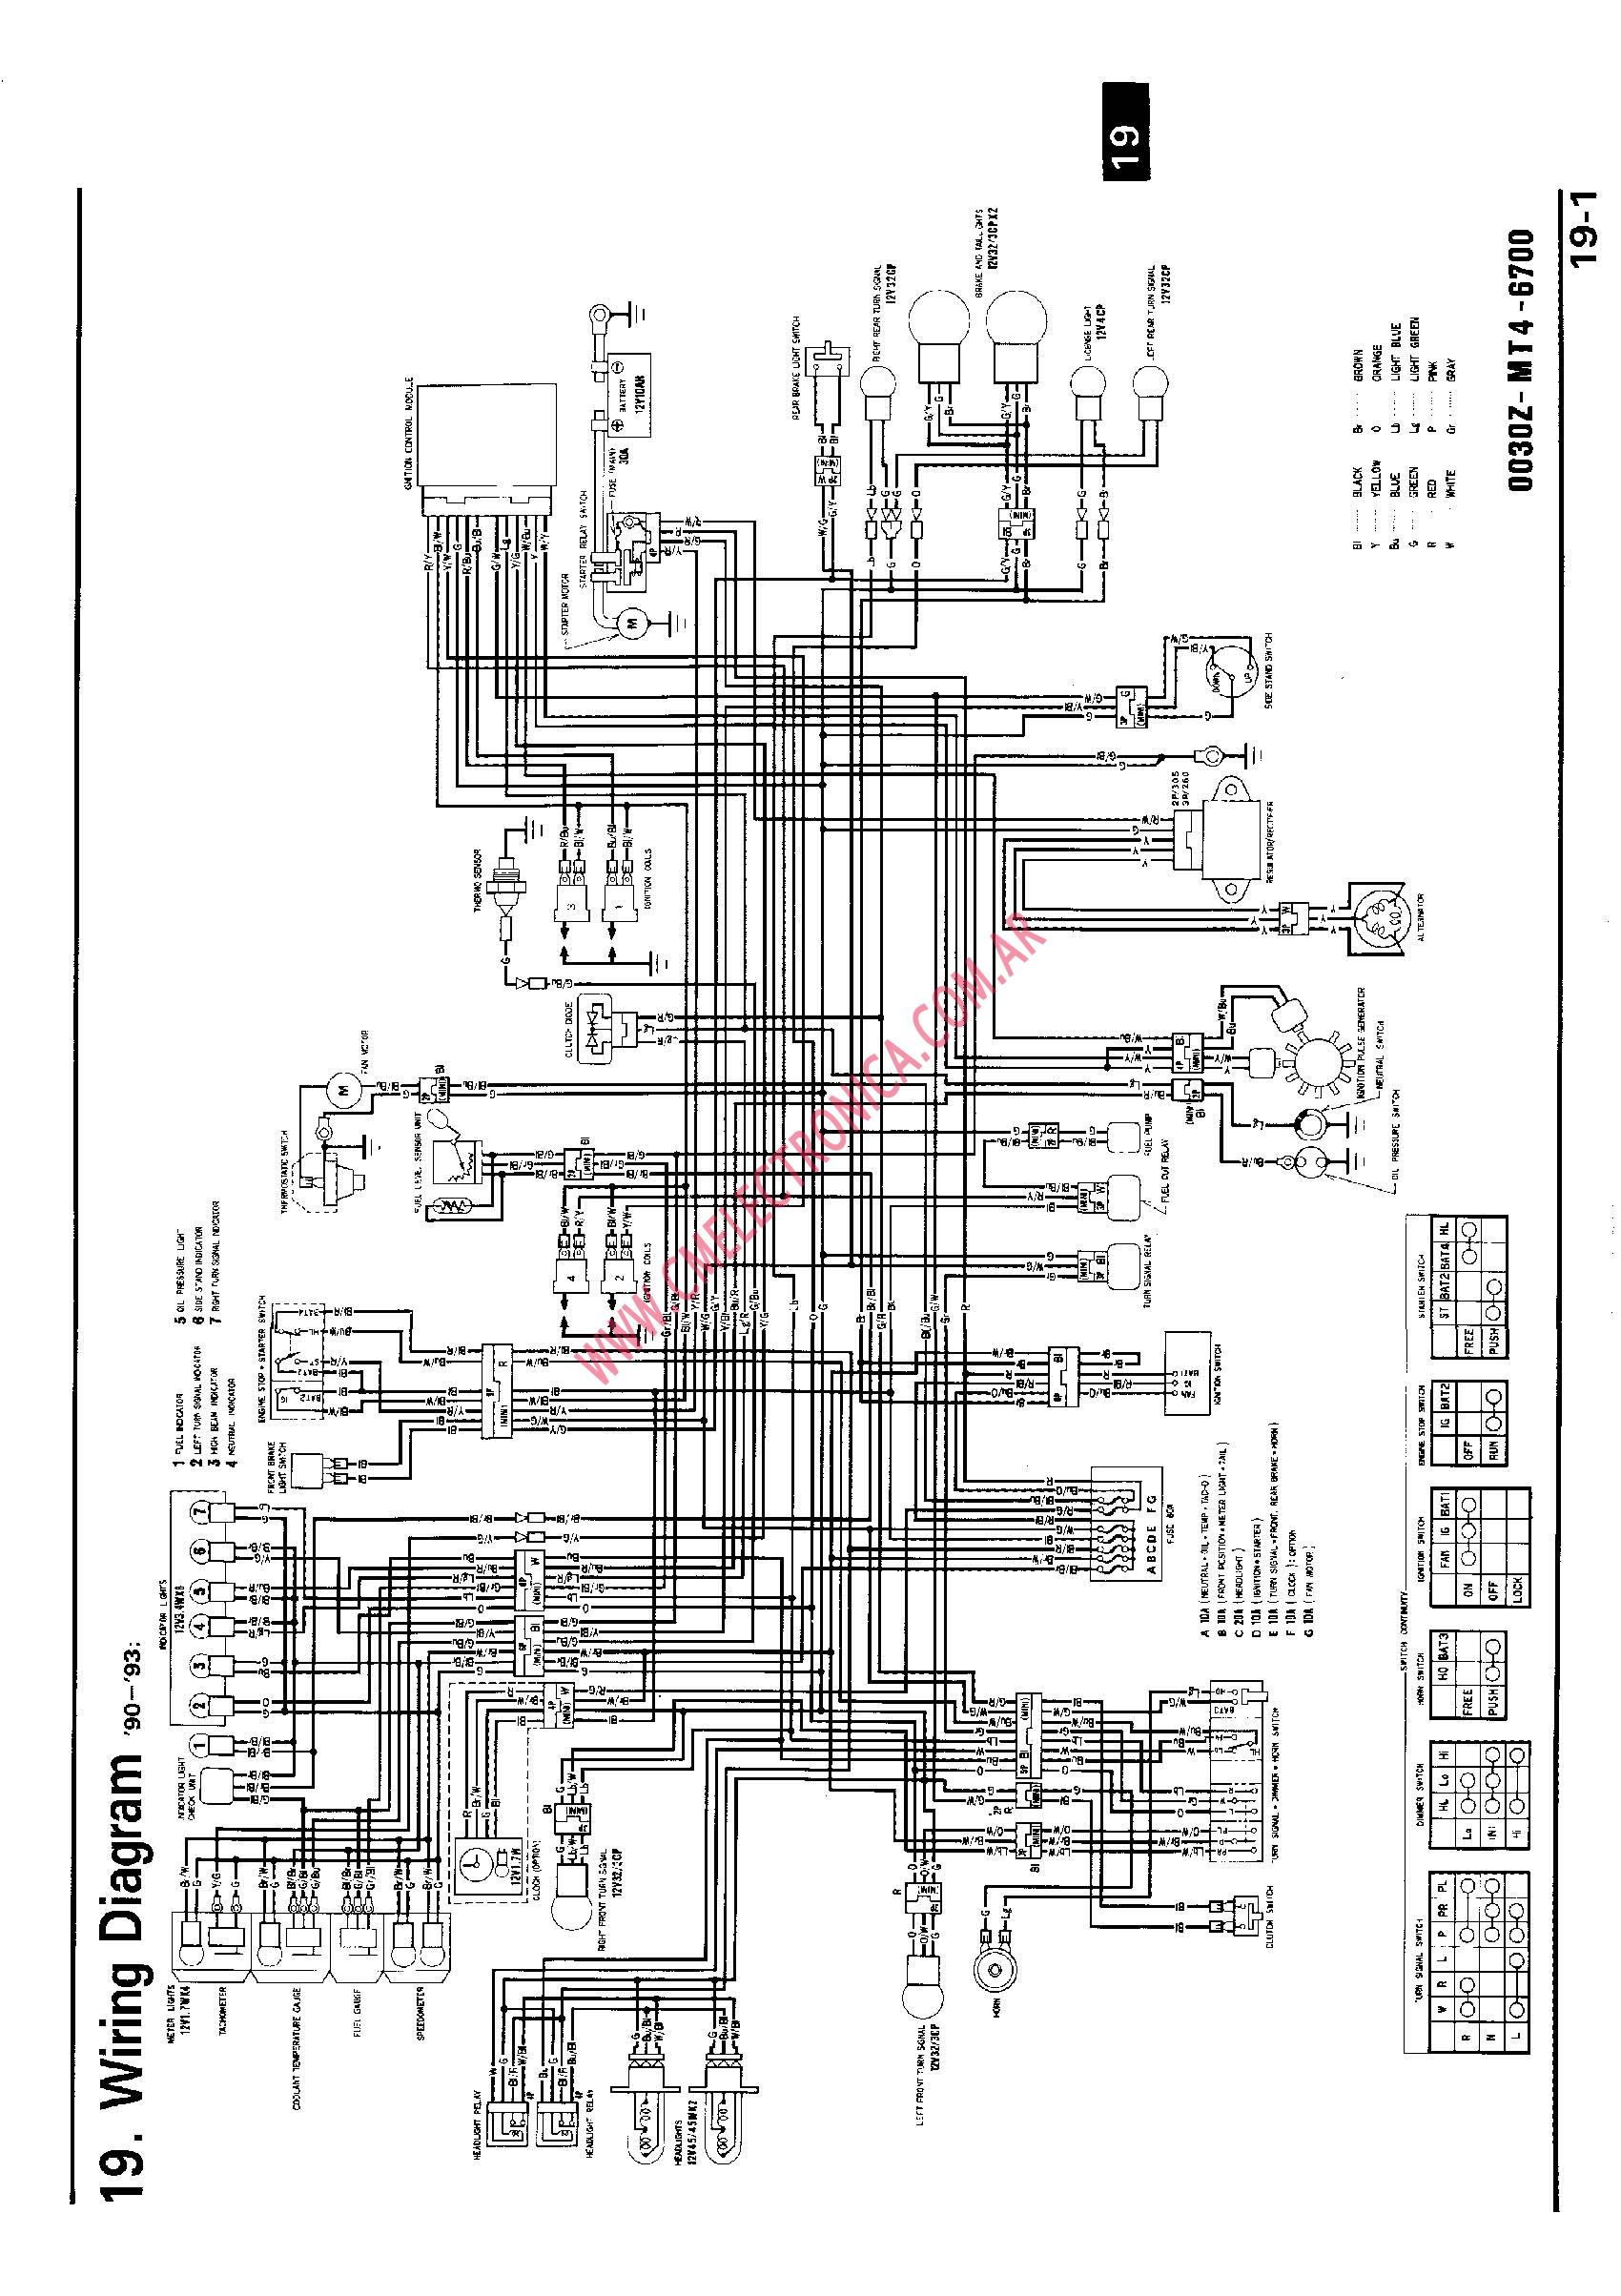 2006 Honda Cbr600rr Wiring Diagram on honda crx parts diagram